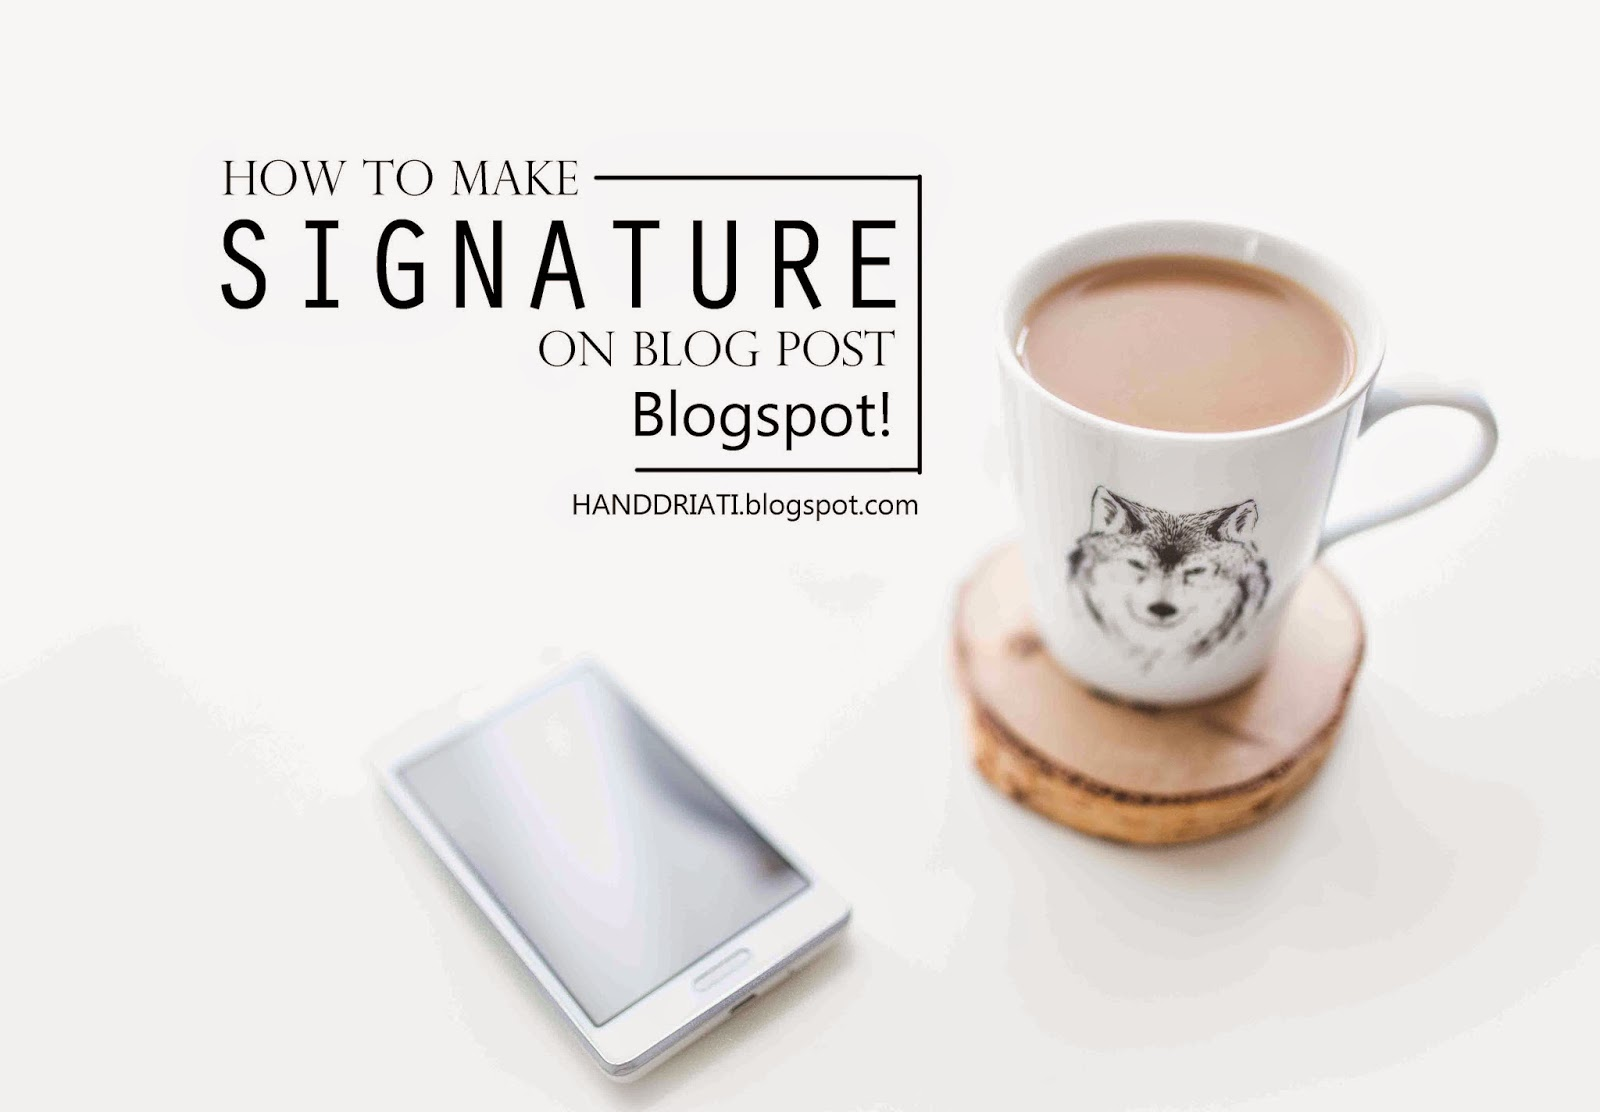 How to make signature on blog post blogspot!